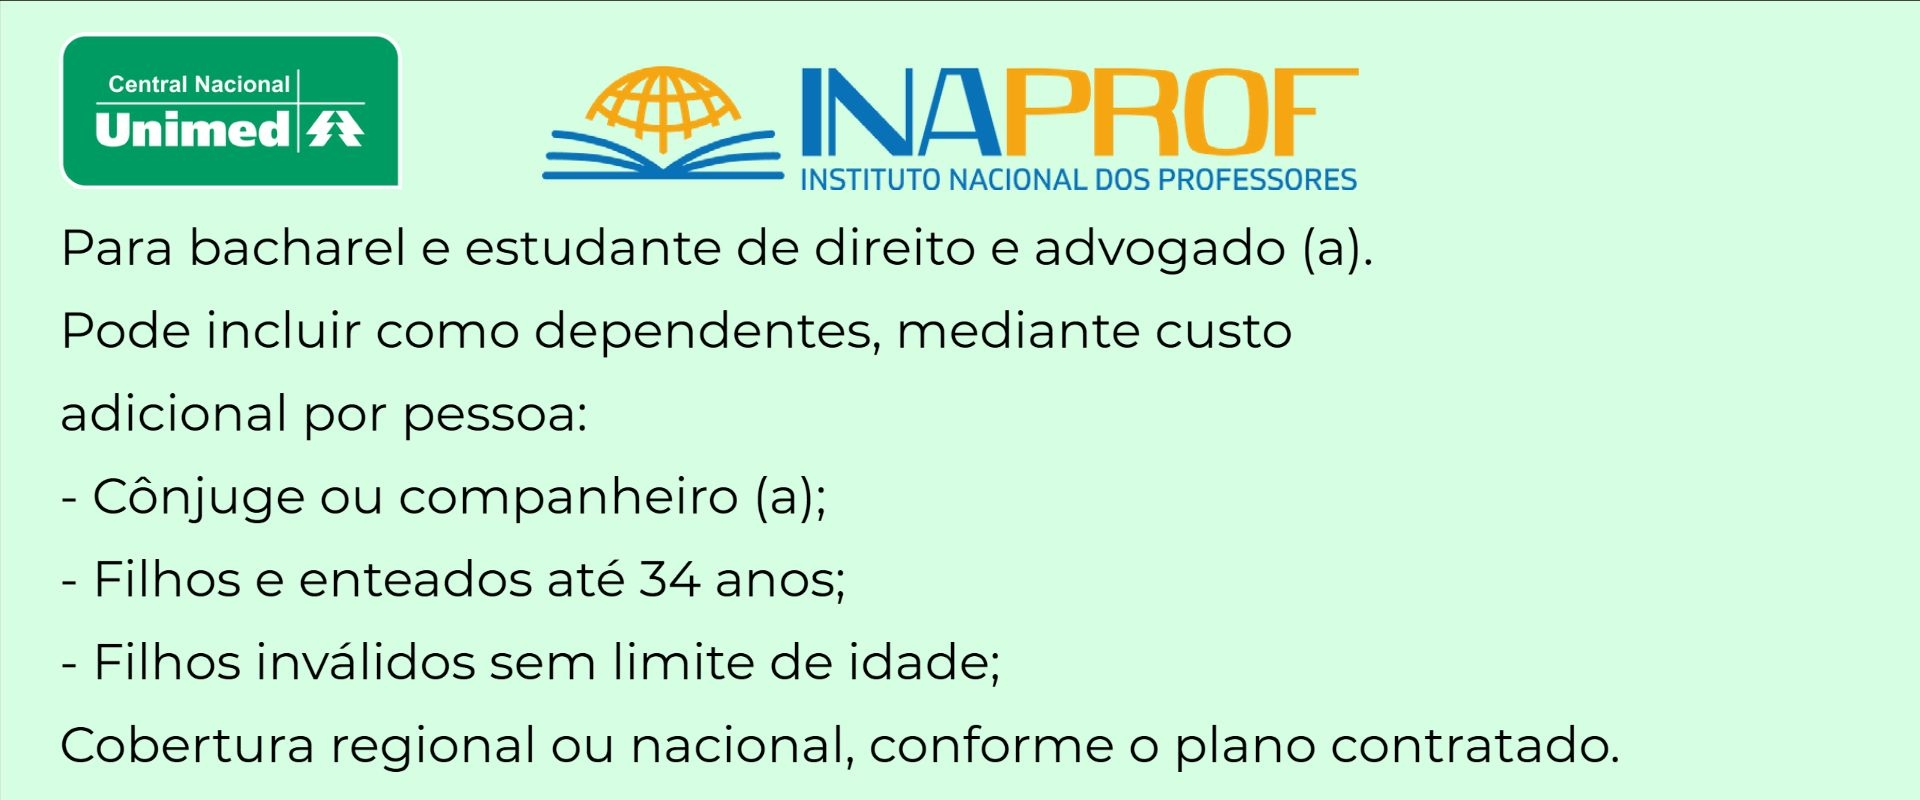 Unimed Inaprof-SP